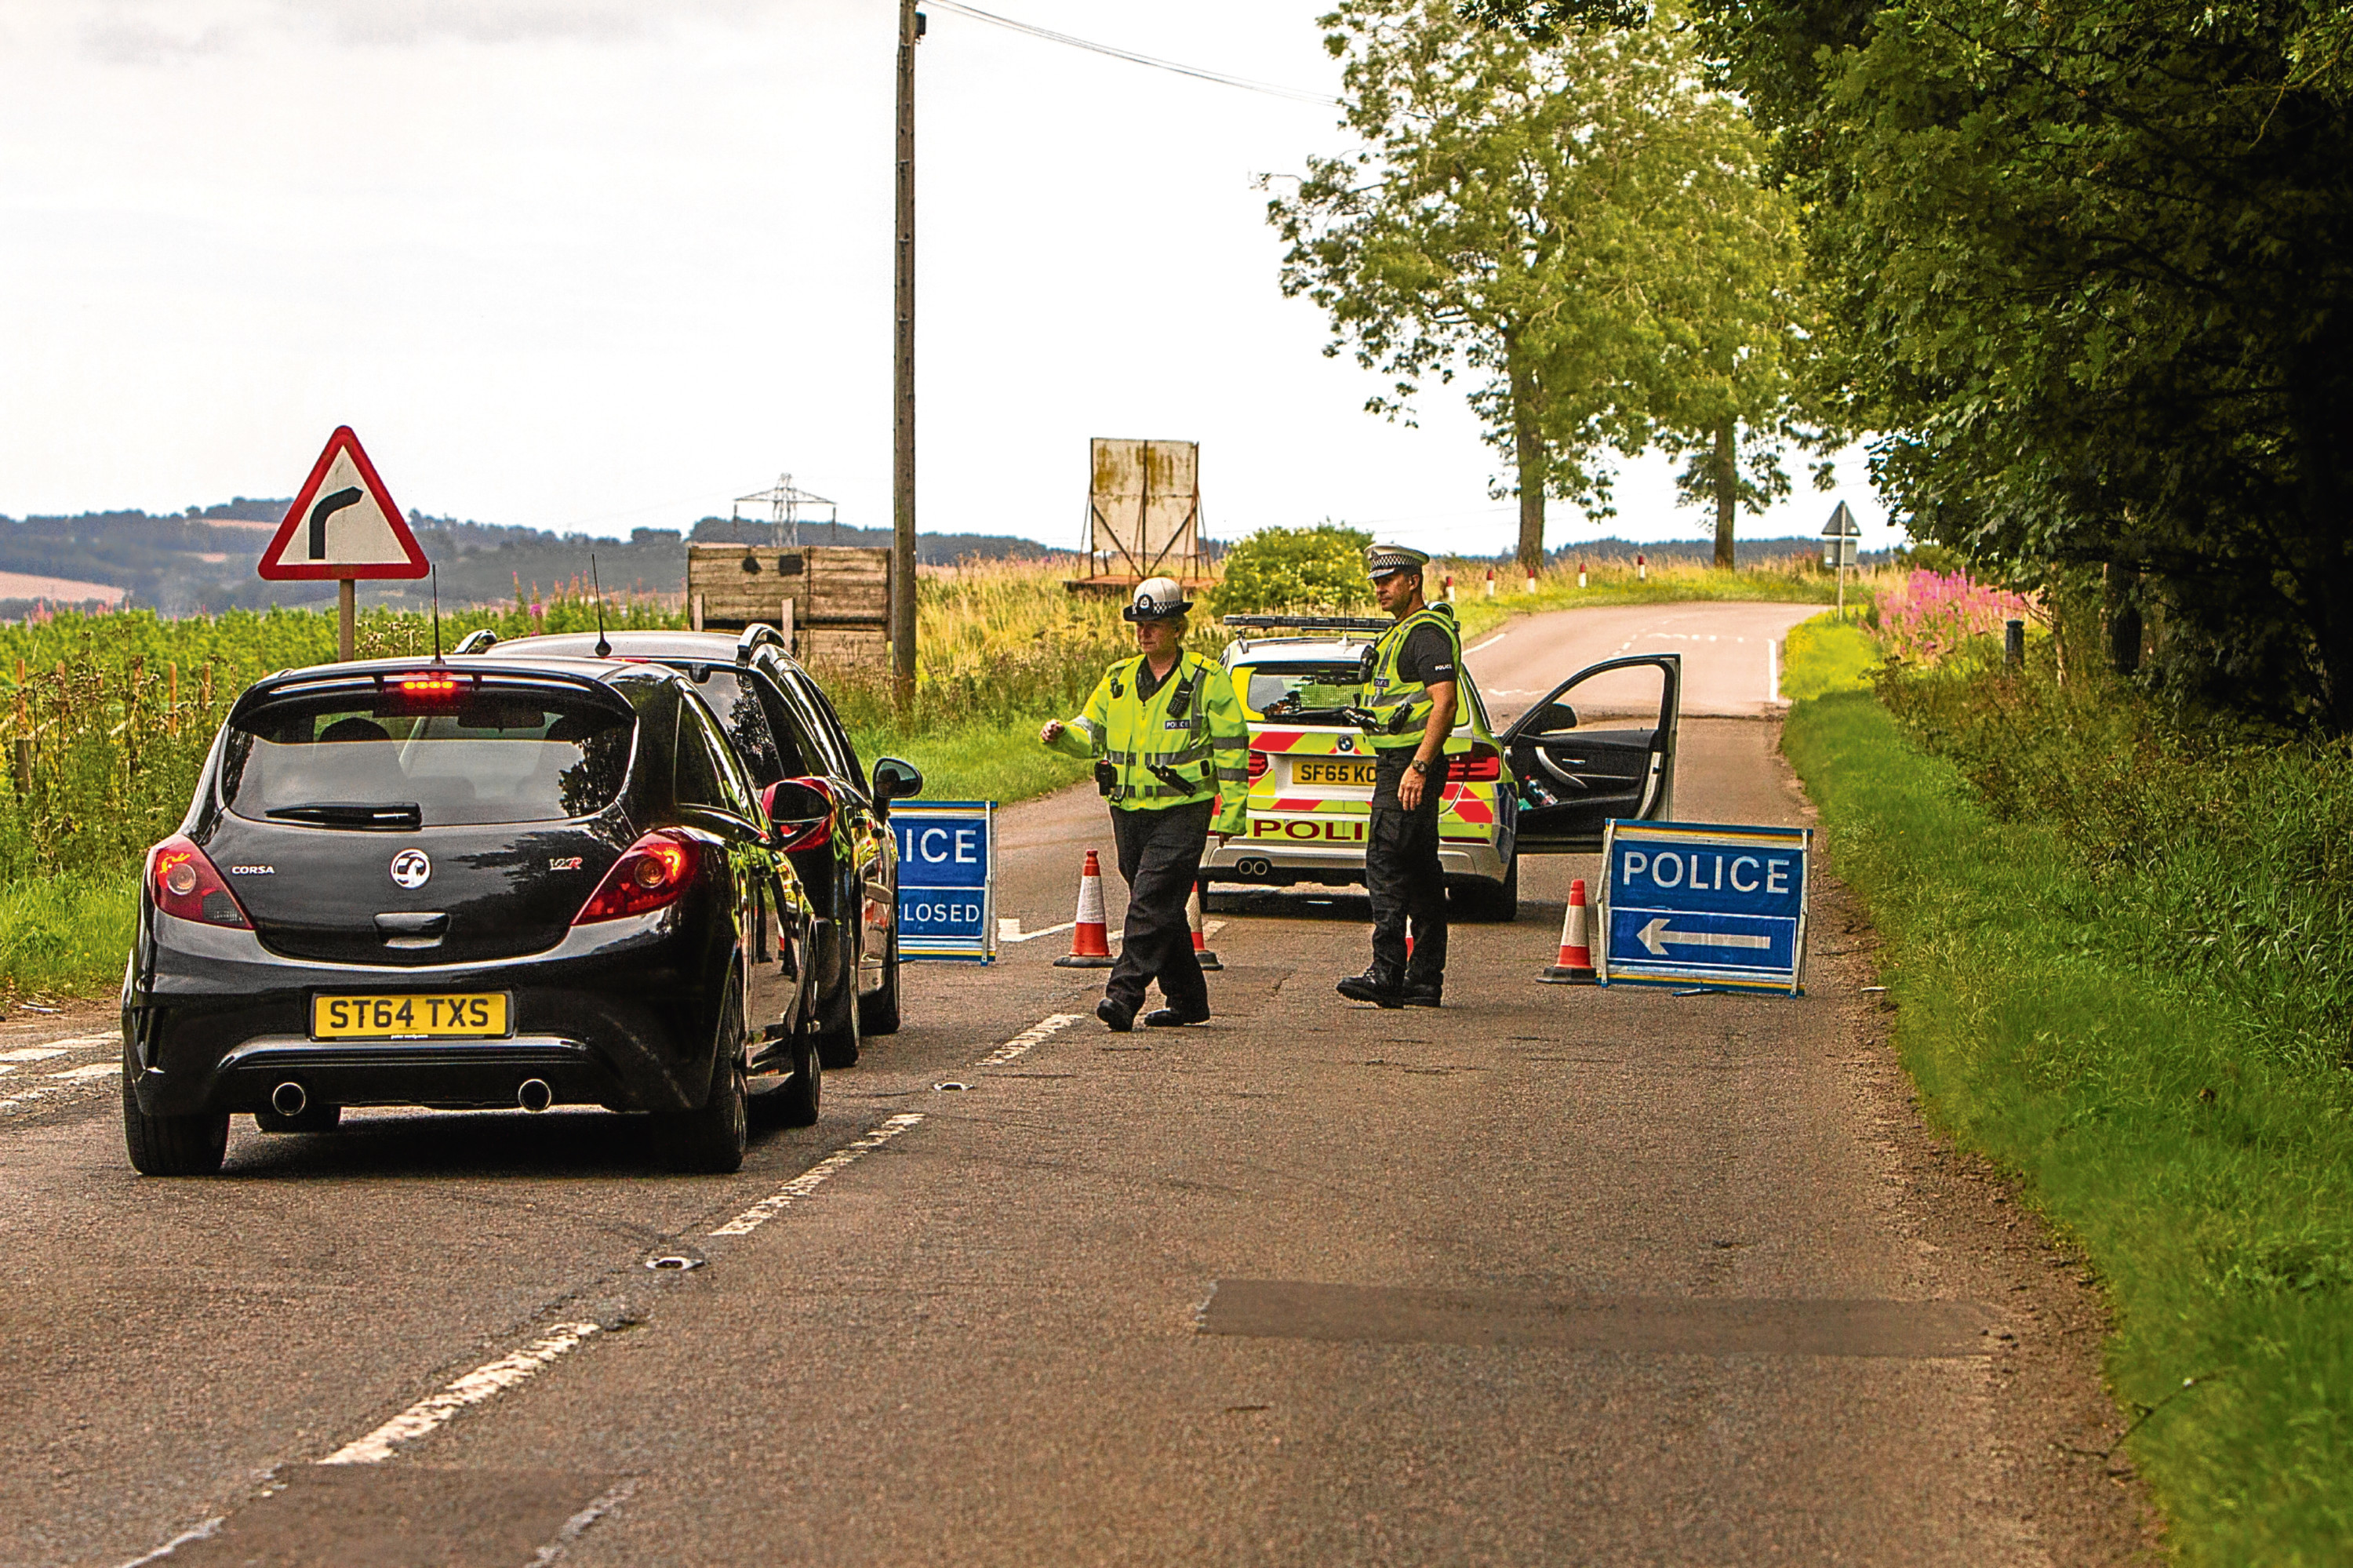 Police divert traffic after a fatal accident on the A923 near Piperdam